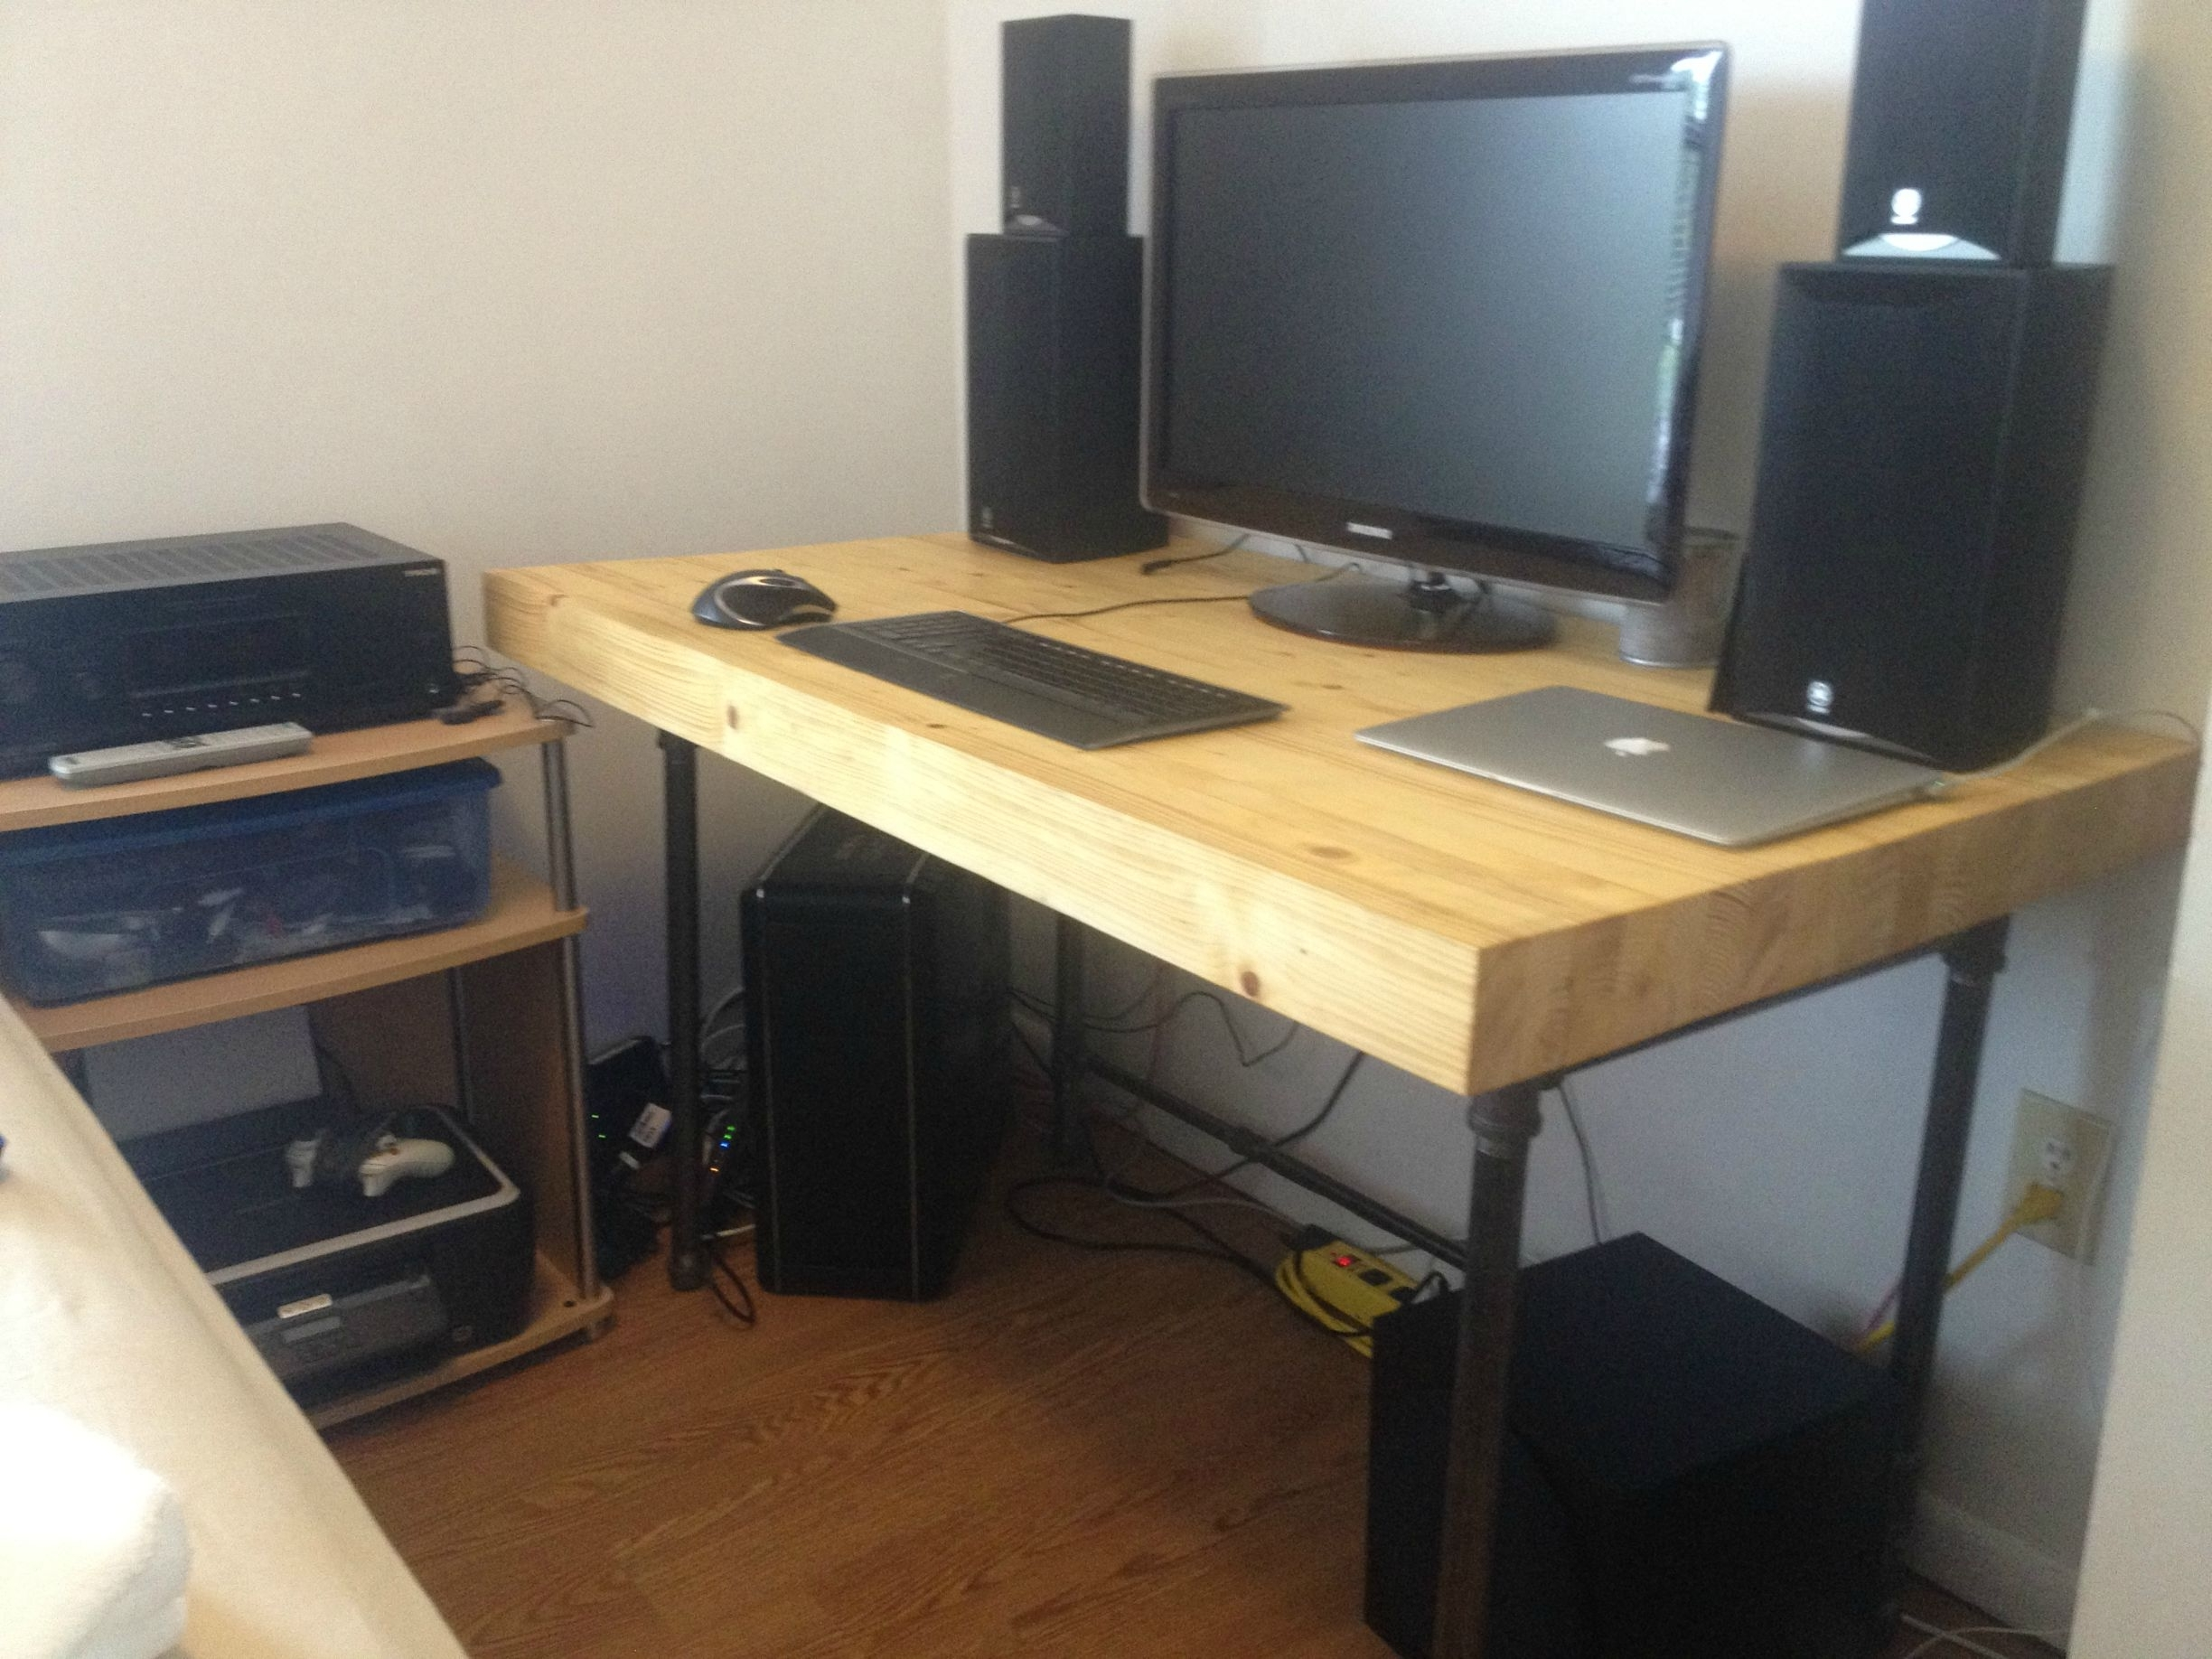 Saving Small Spaces With Custom Diy Butcher Block Computer Desk Intended For Current Diy Computer Desks (View 19 of 20)